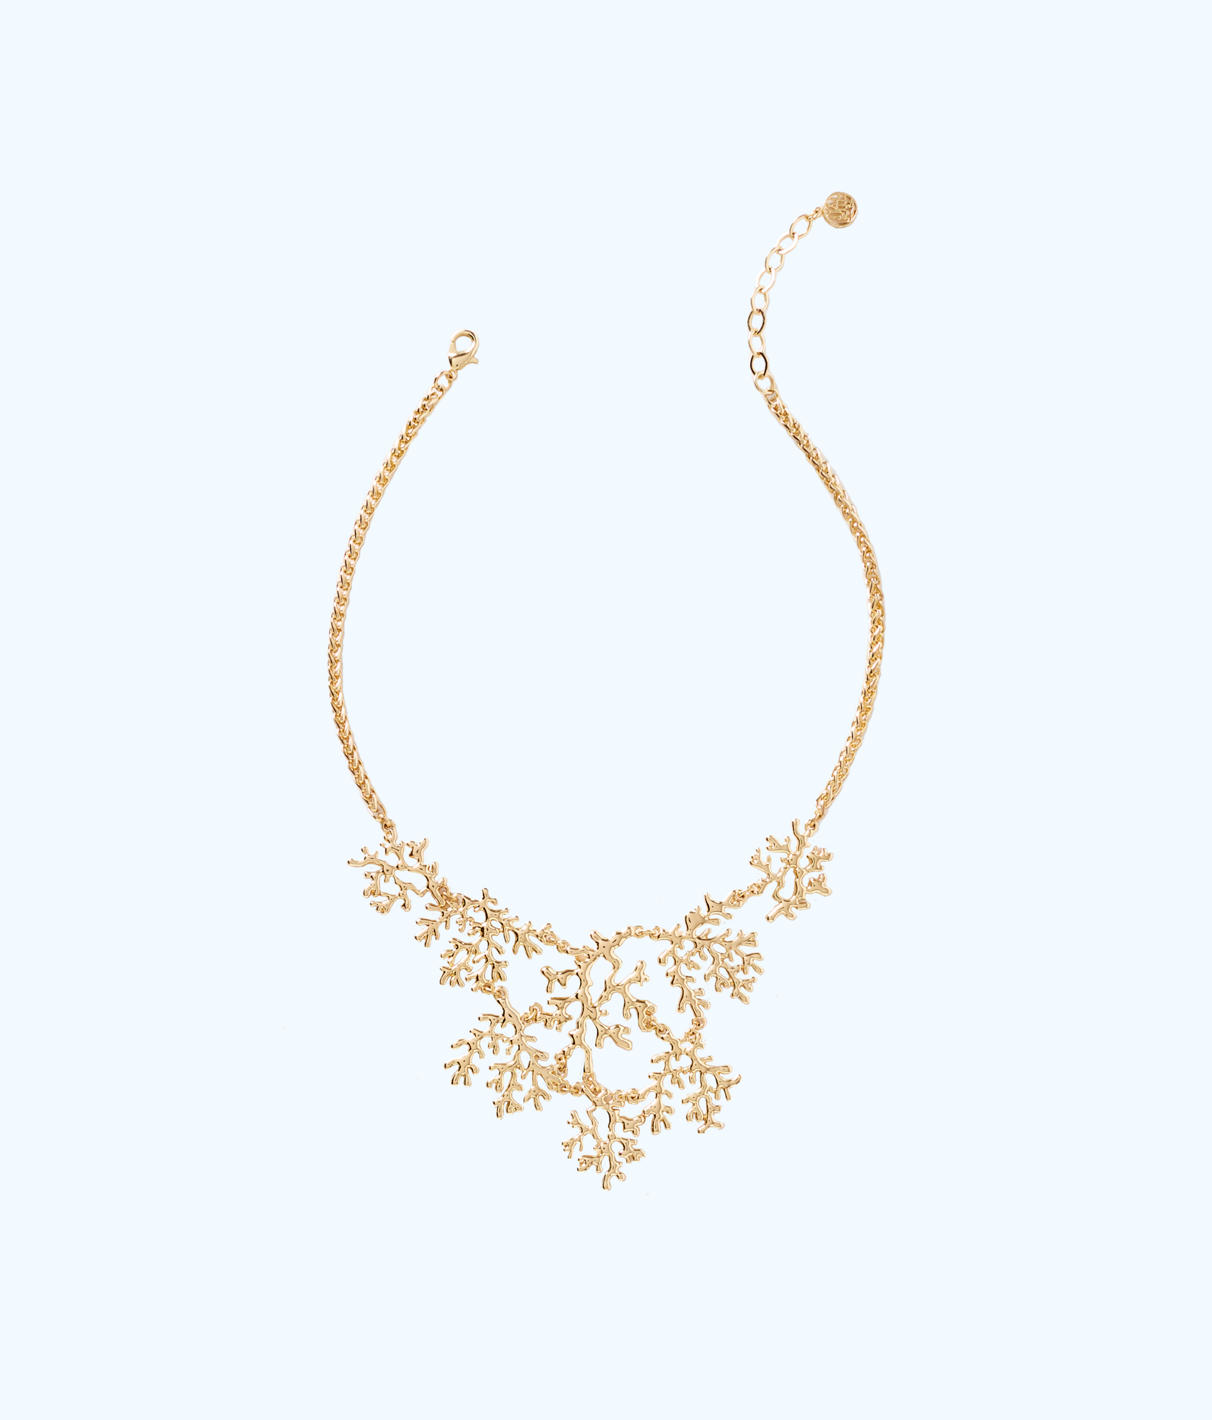 Lilly Pulitzer Lilly Pulitzer Elsa Necklace